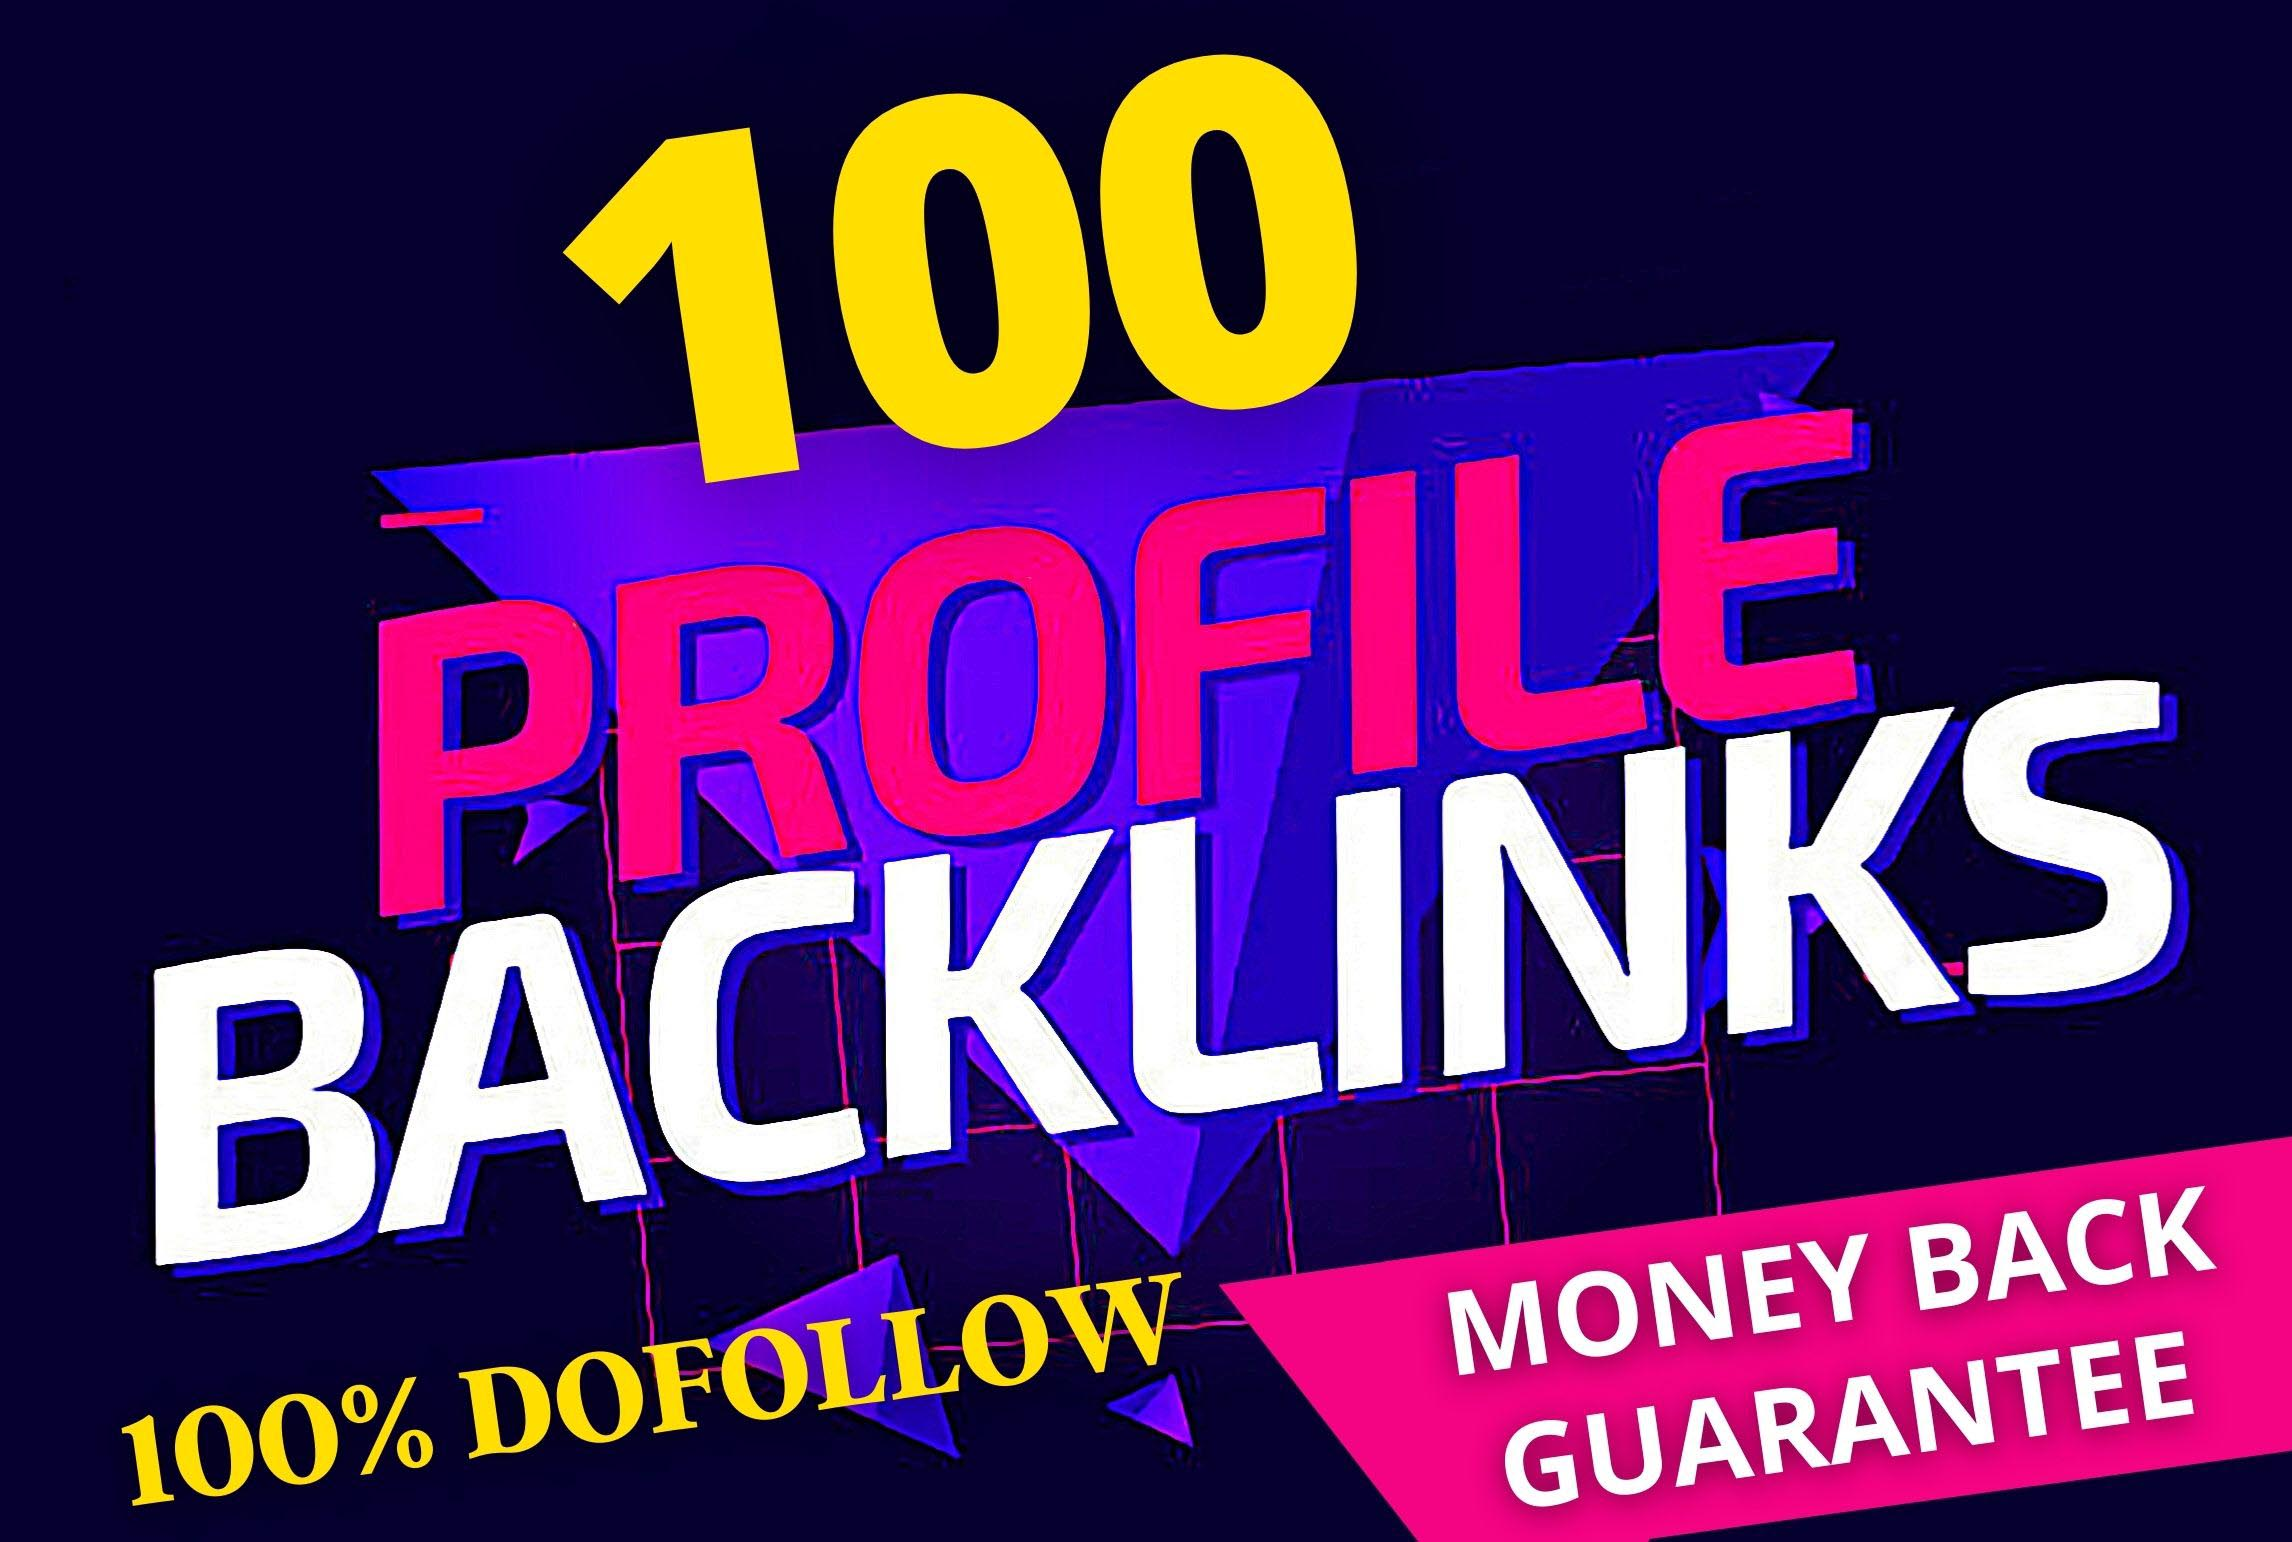 80+DA PA Pr9 100 dofollow Profile Backlinks creations SEO Link building